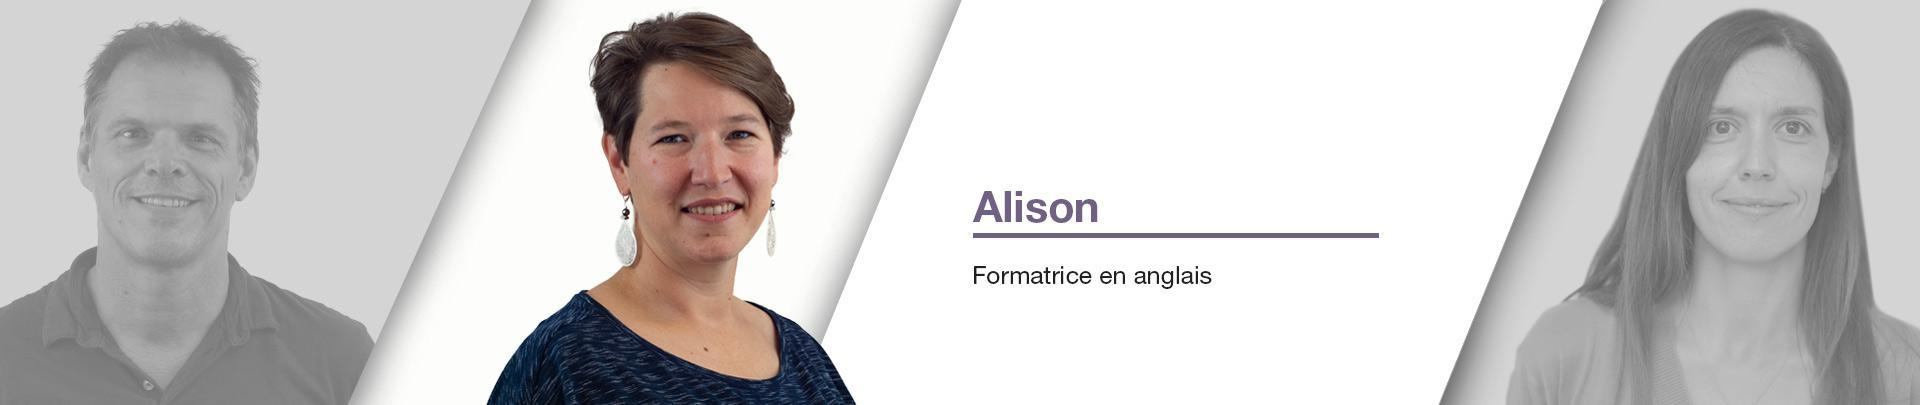 Alisson Carberry - Formatrice en anglais